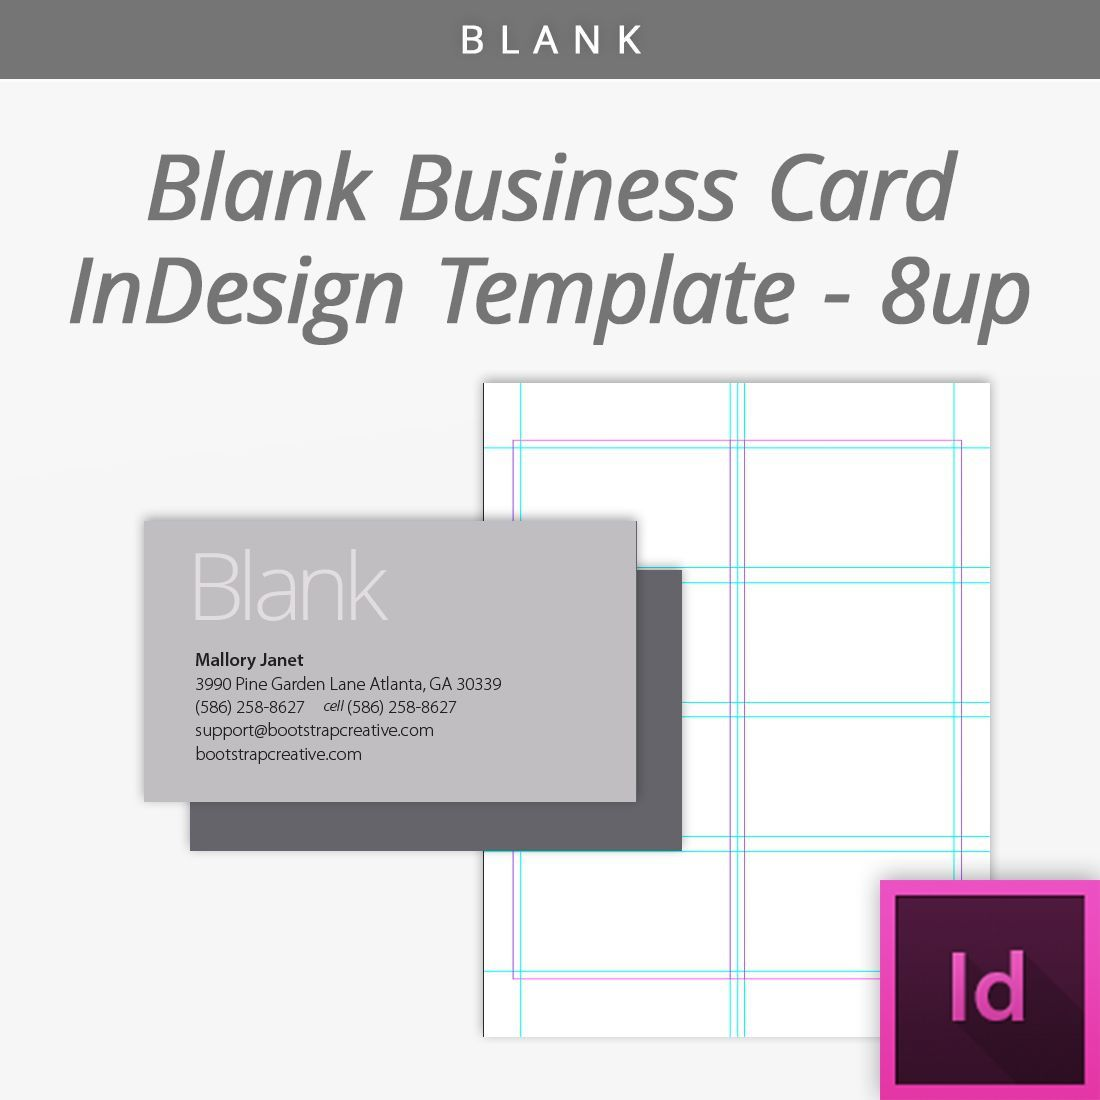 003 Unbelievable Busines Card Layout Indesign High Definition  Size Template Free Download Cs6Full